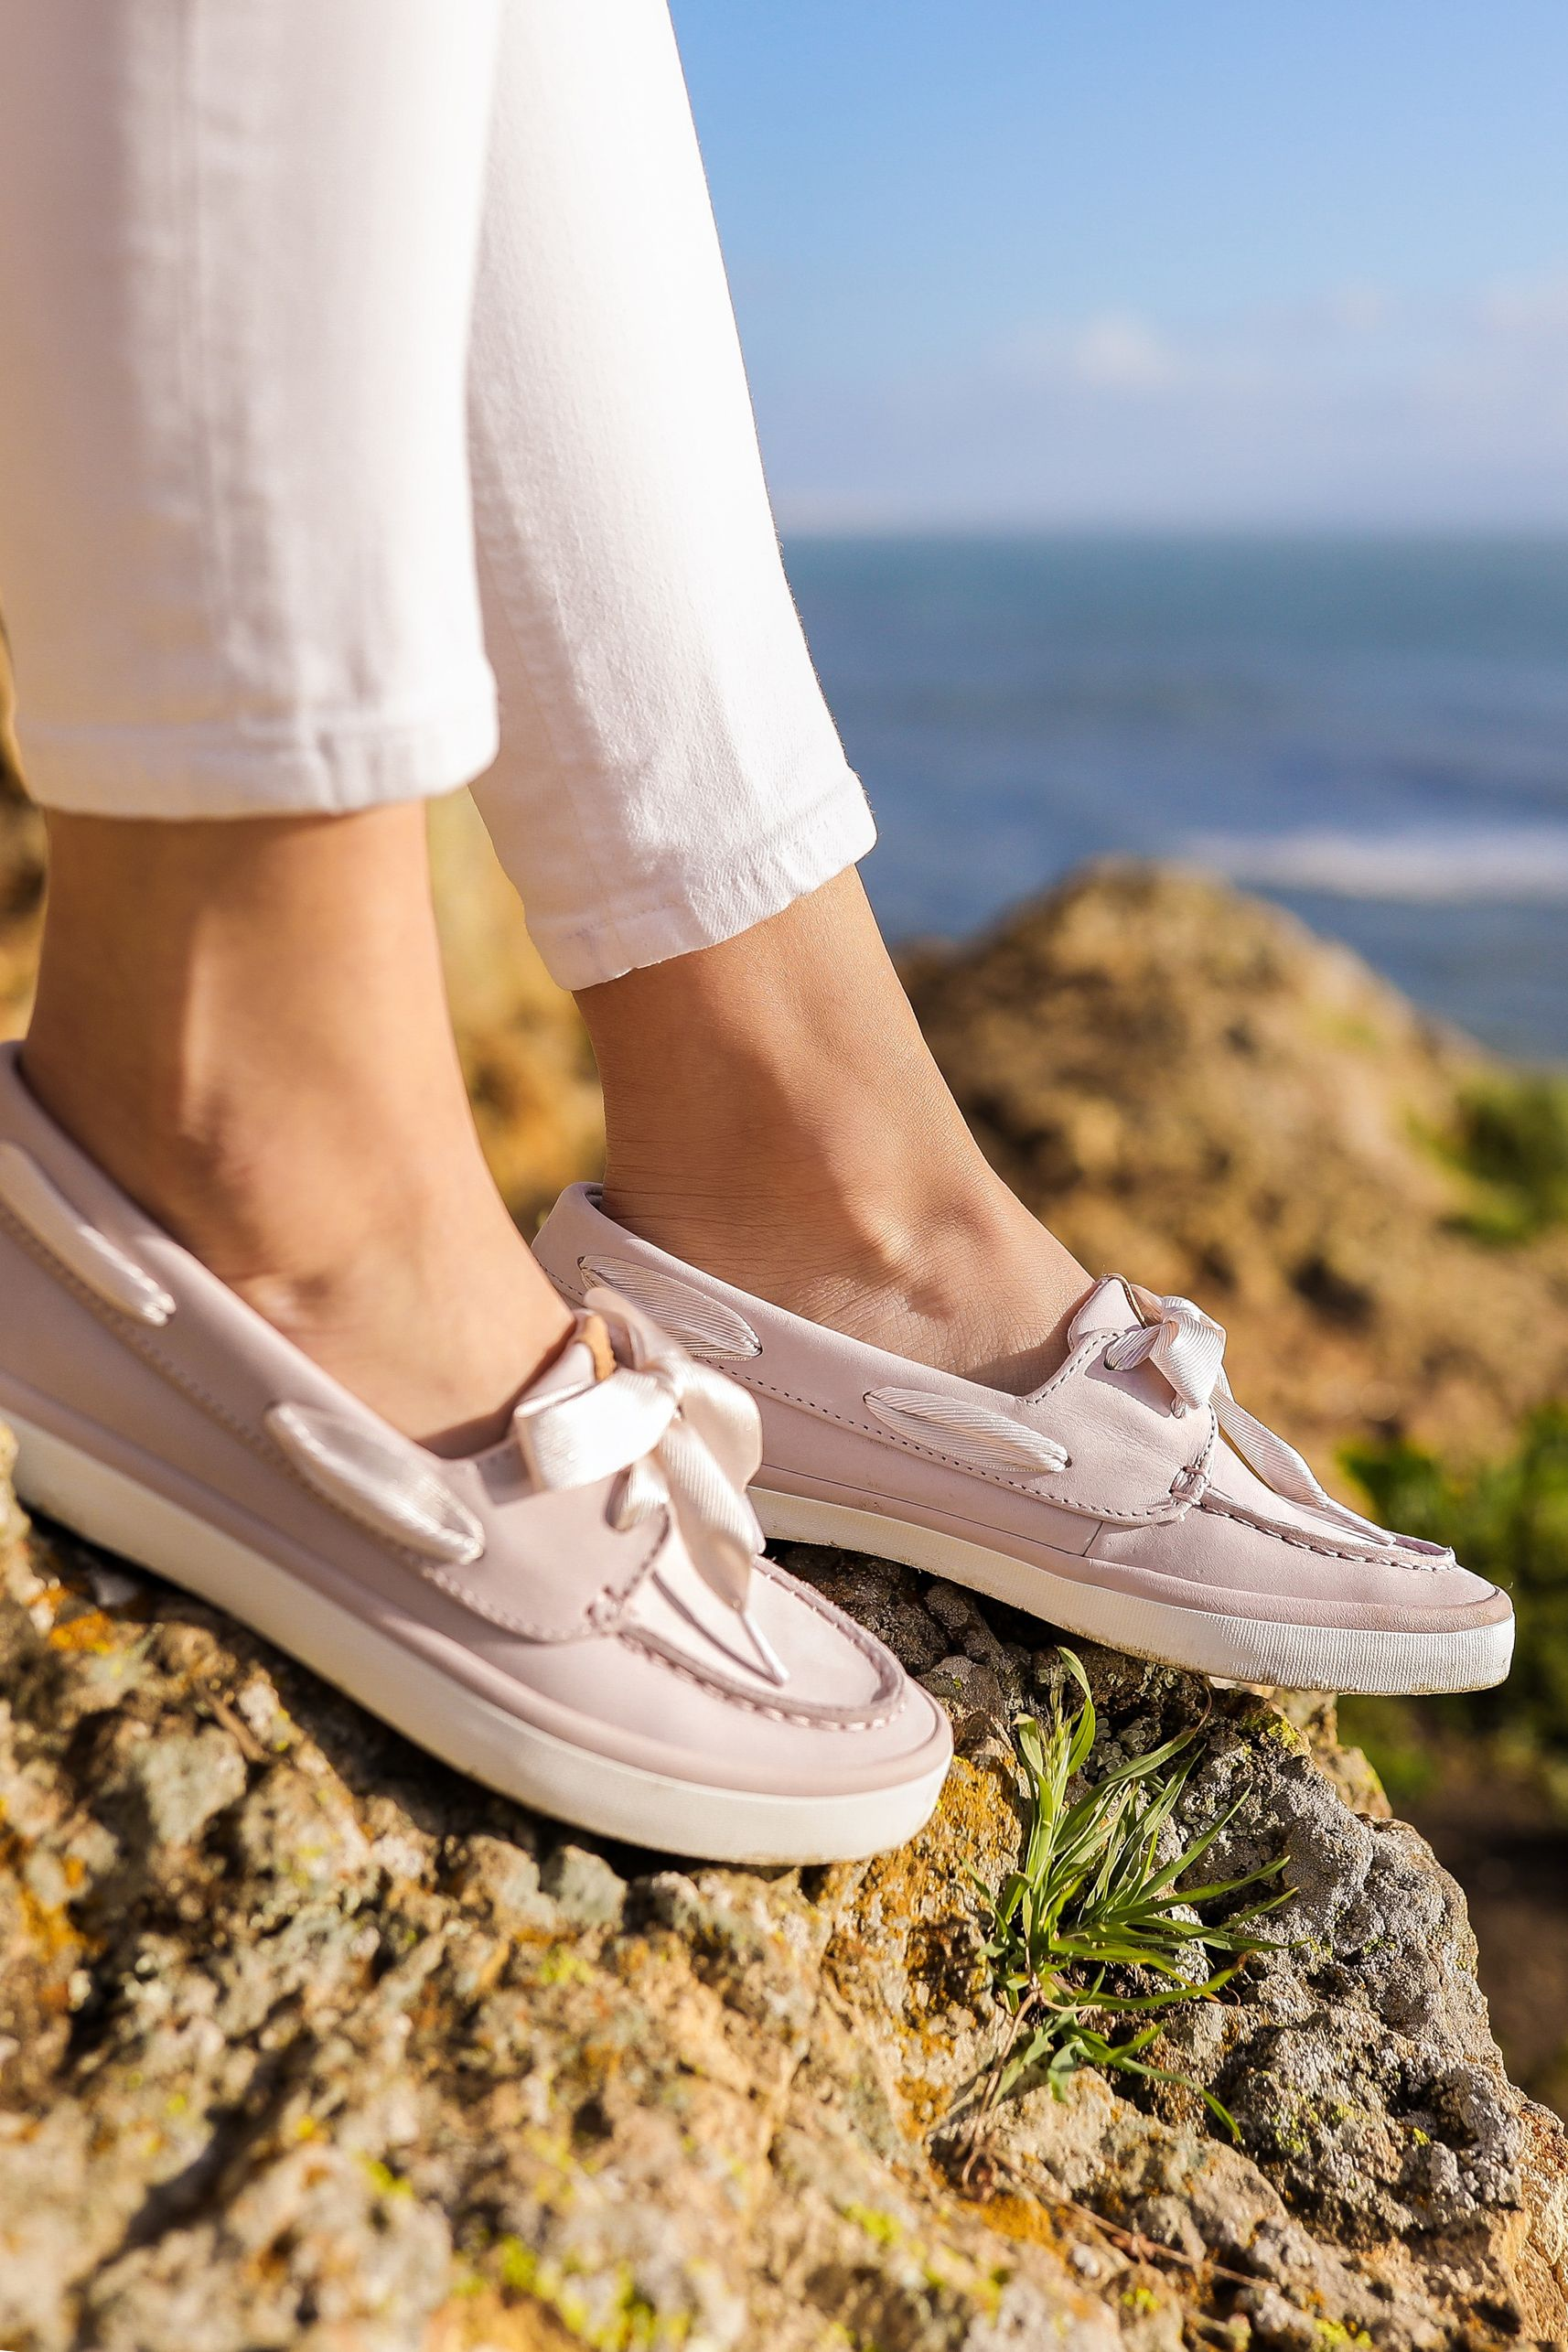 sperry sailor boat shoes